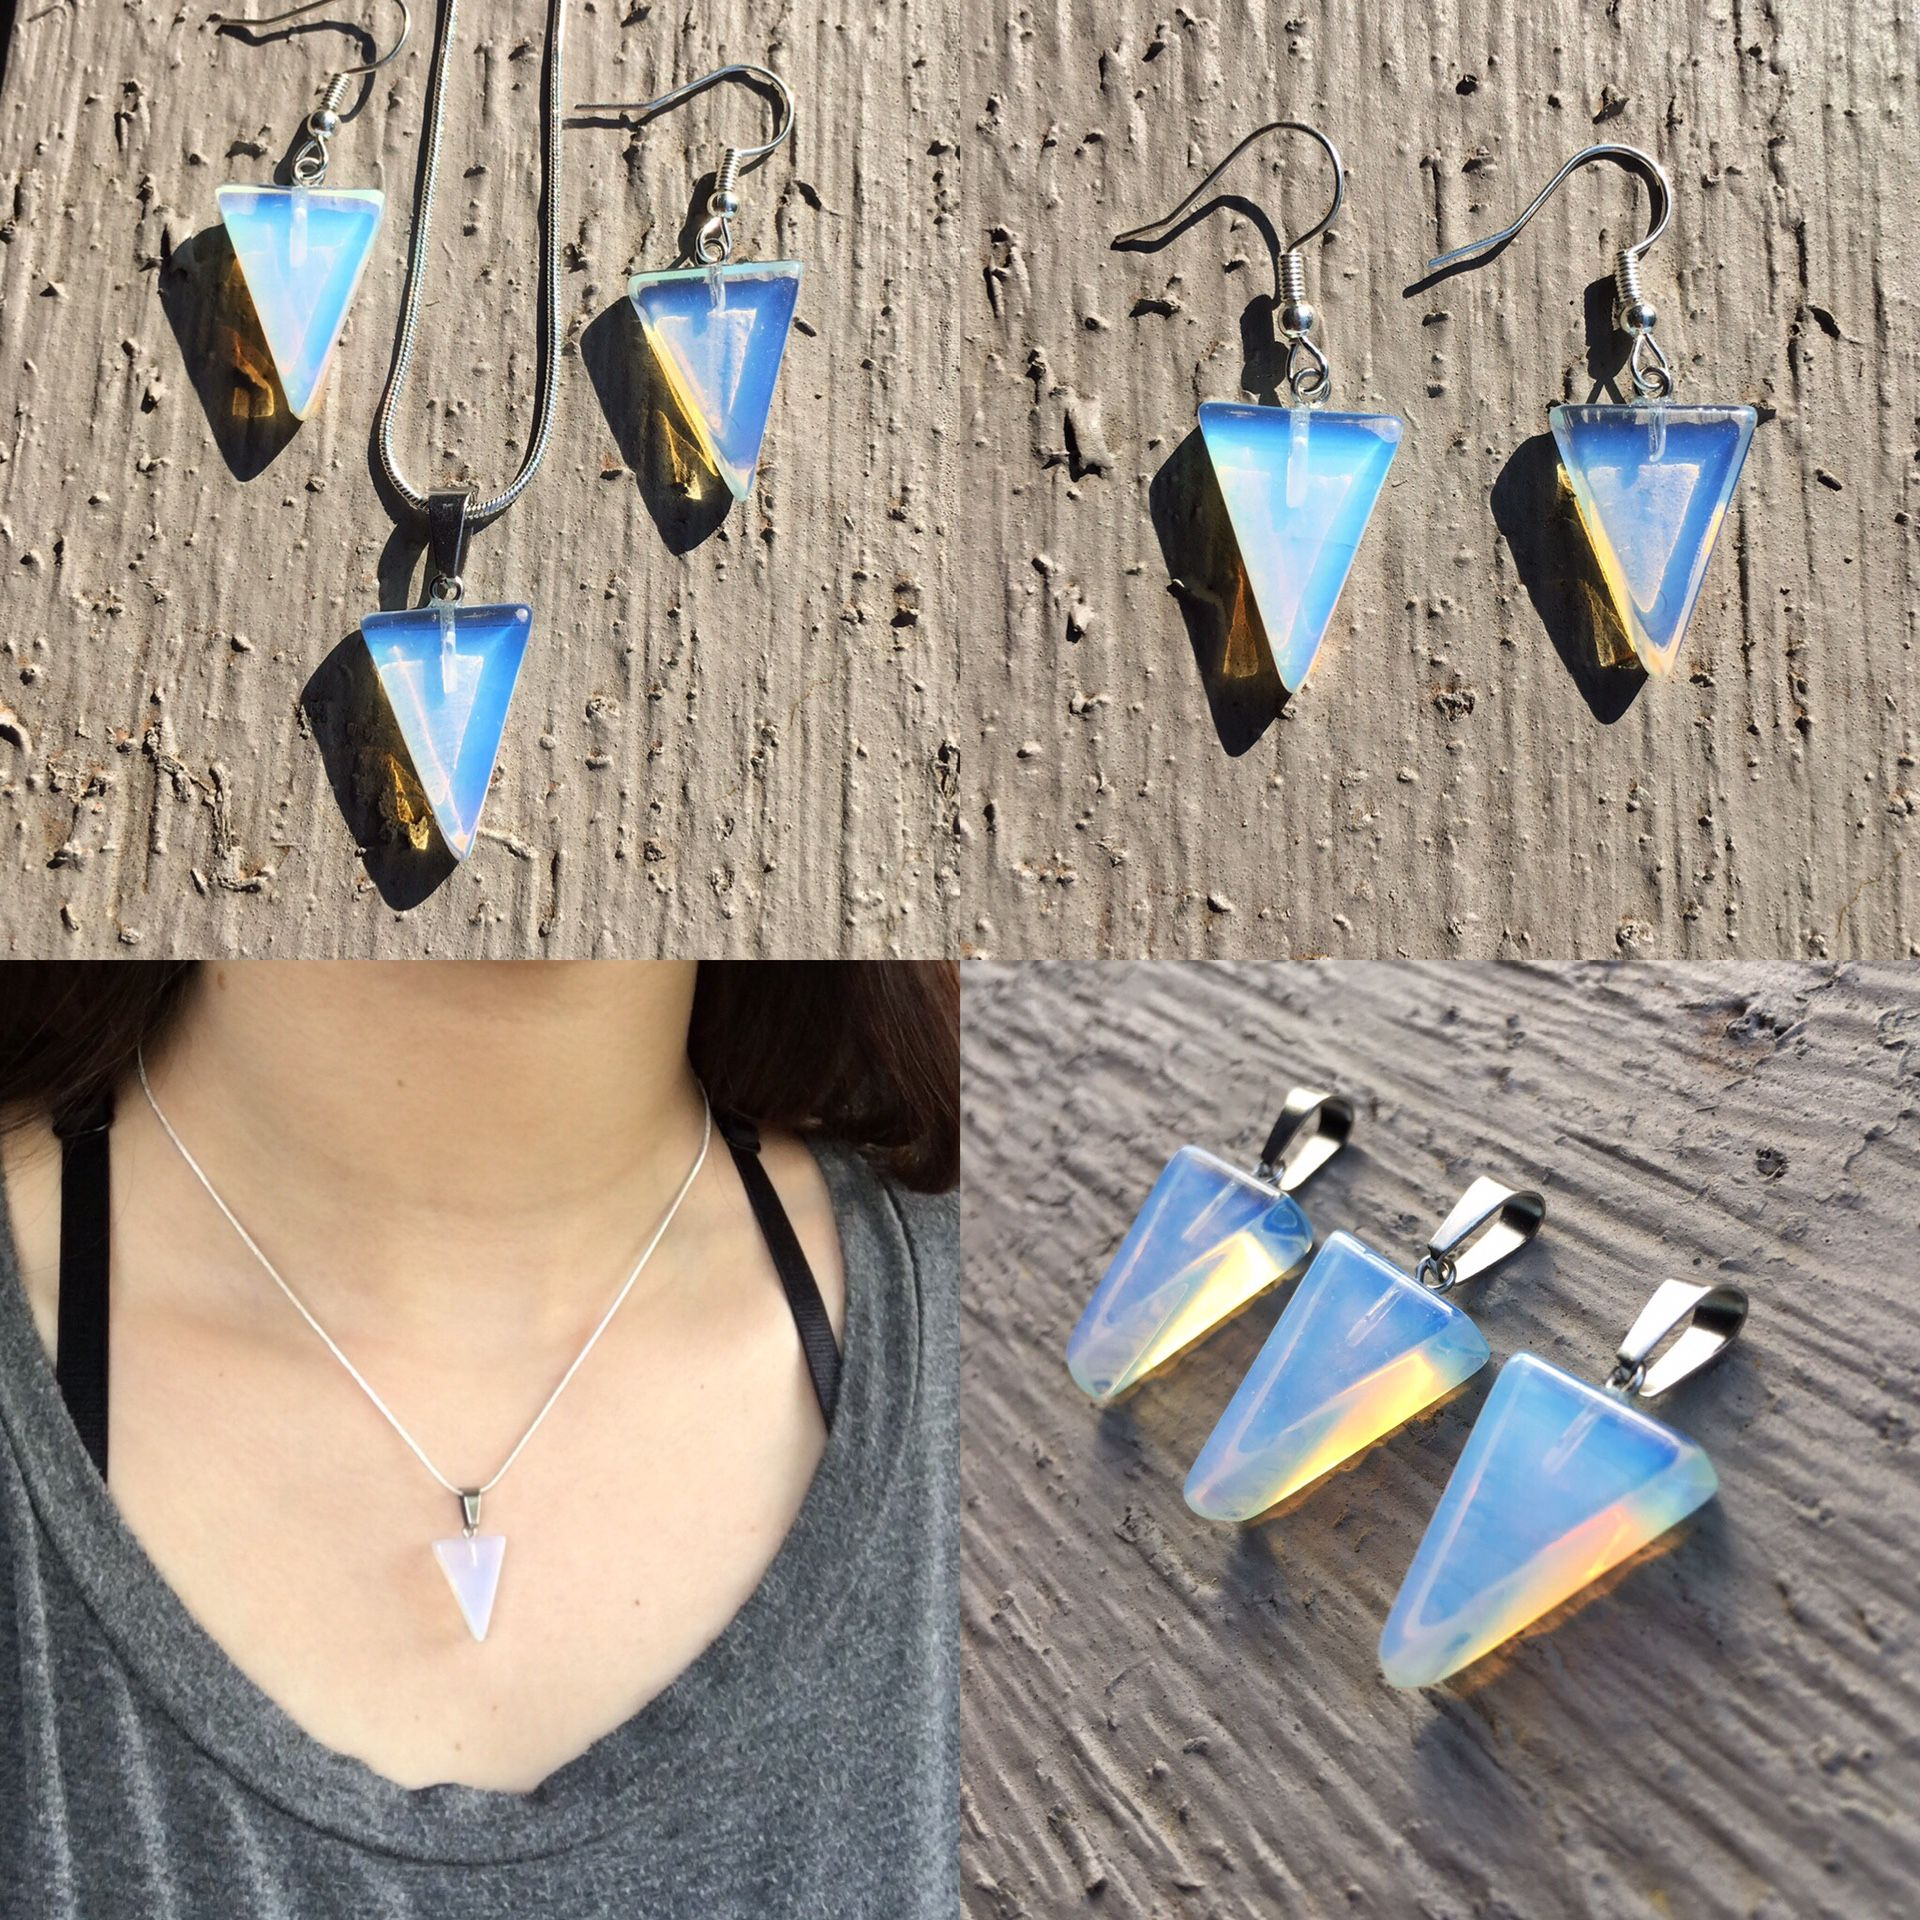 Sea Opal Moonstone Triangle Pendant Necklace and Matching Earrings // Opal Glass Opalite Jewelry // Healing Crystal Necklace